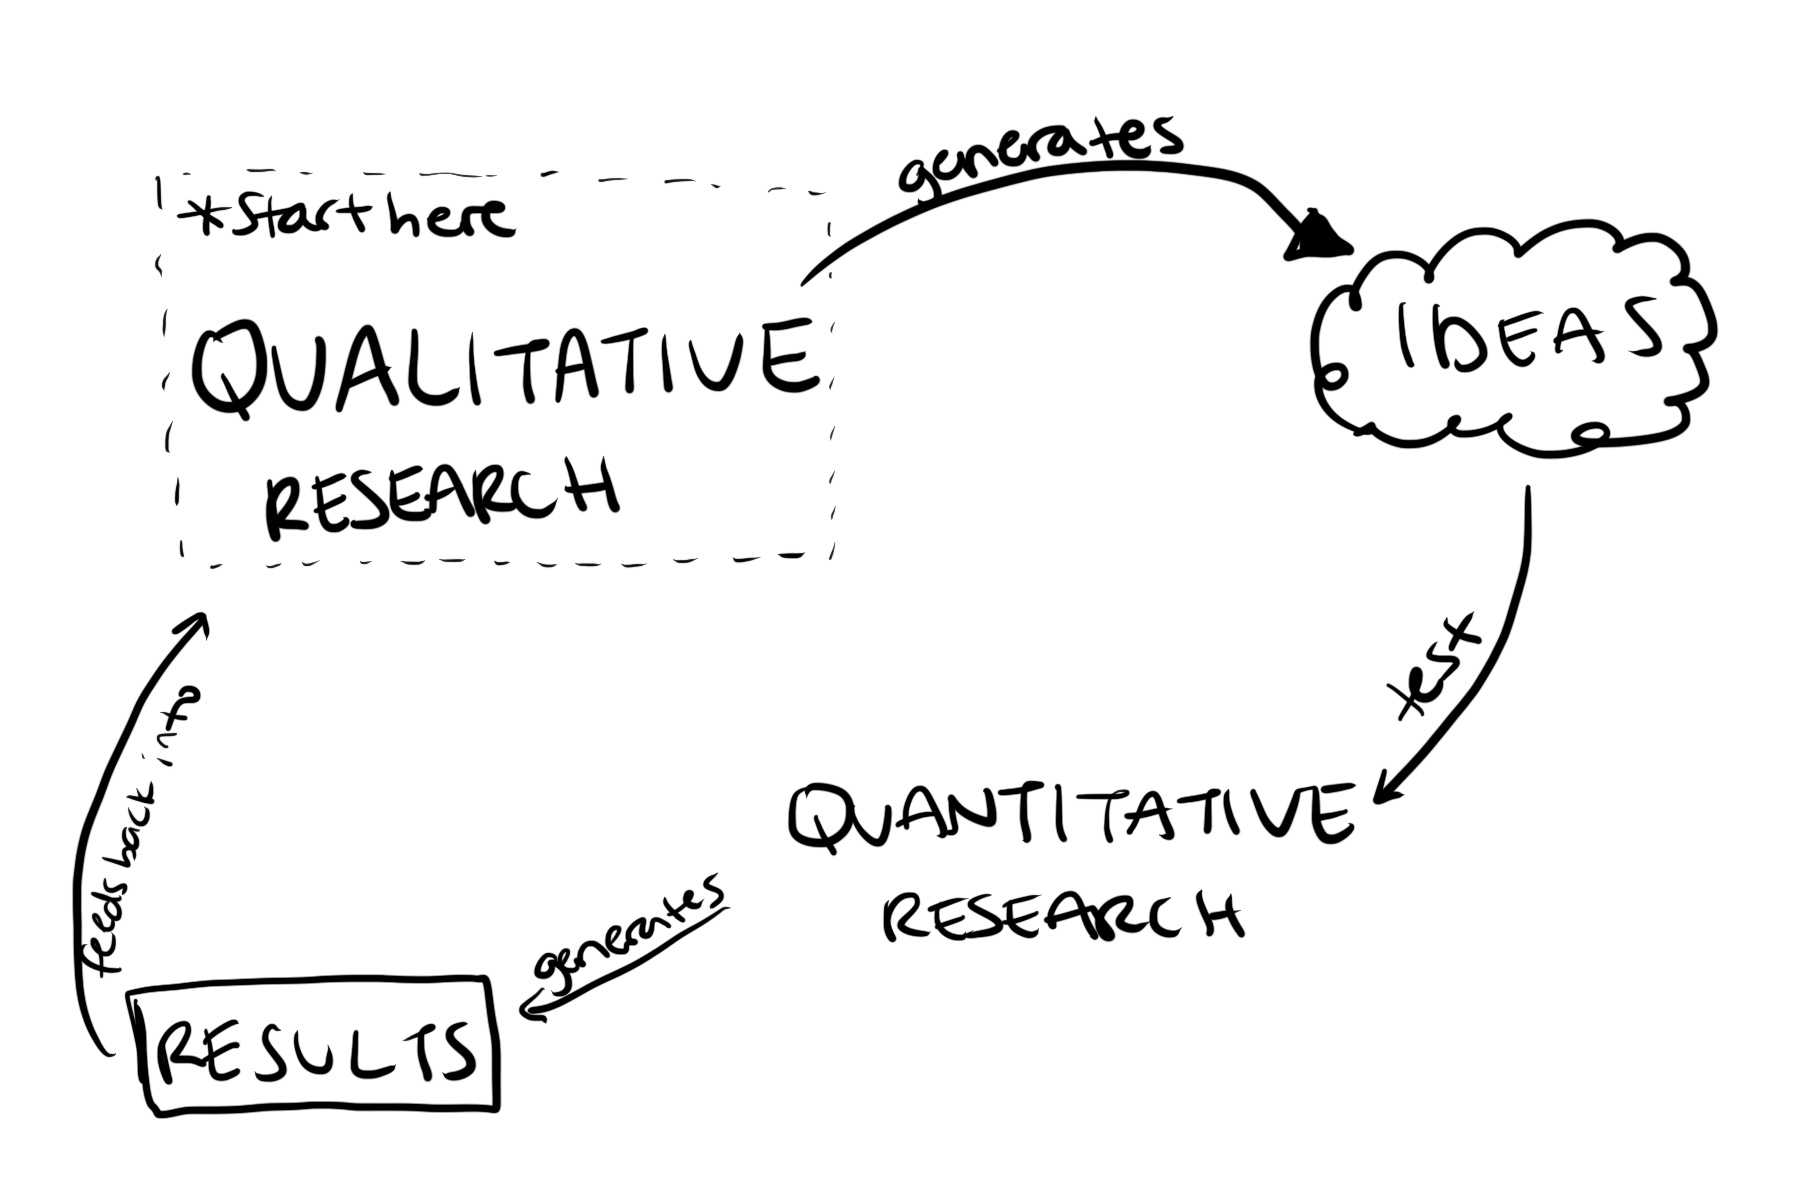 Flow of research